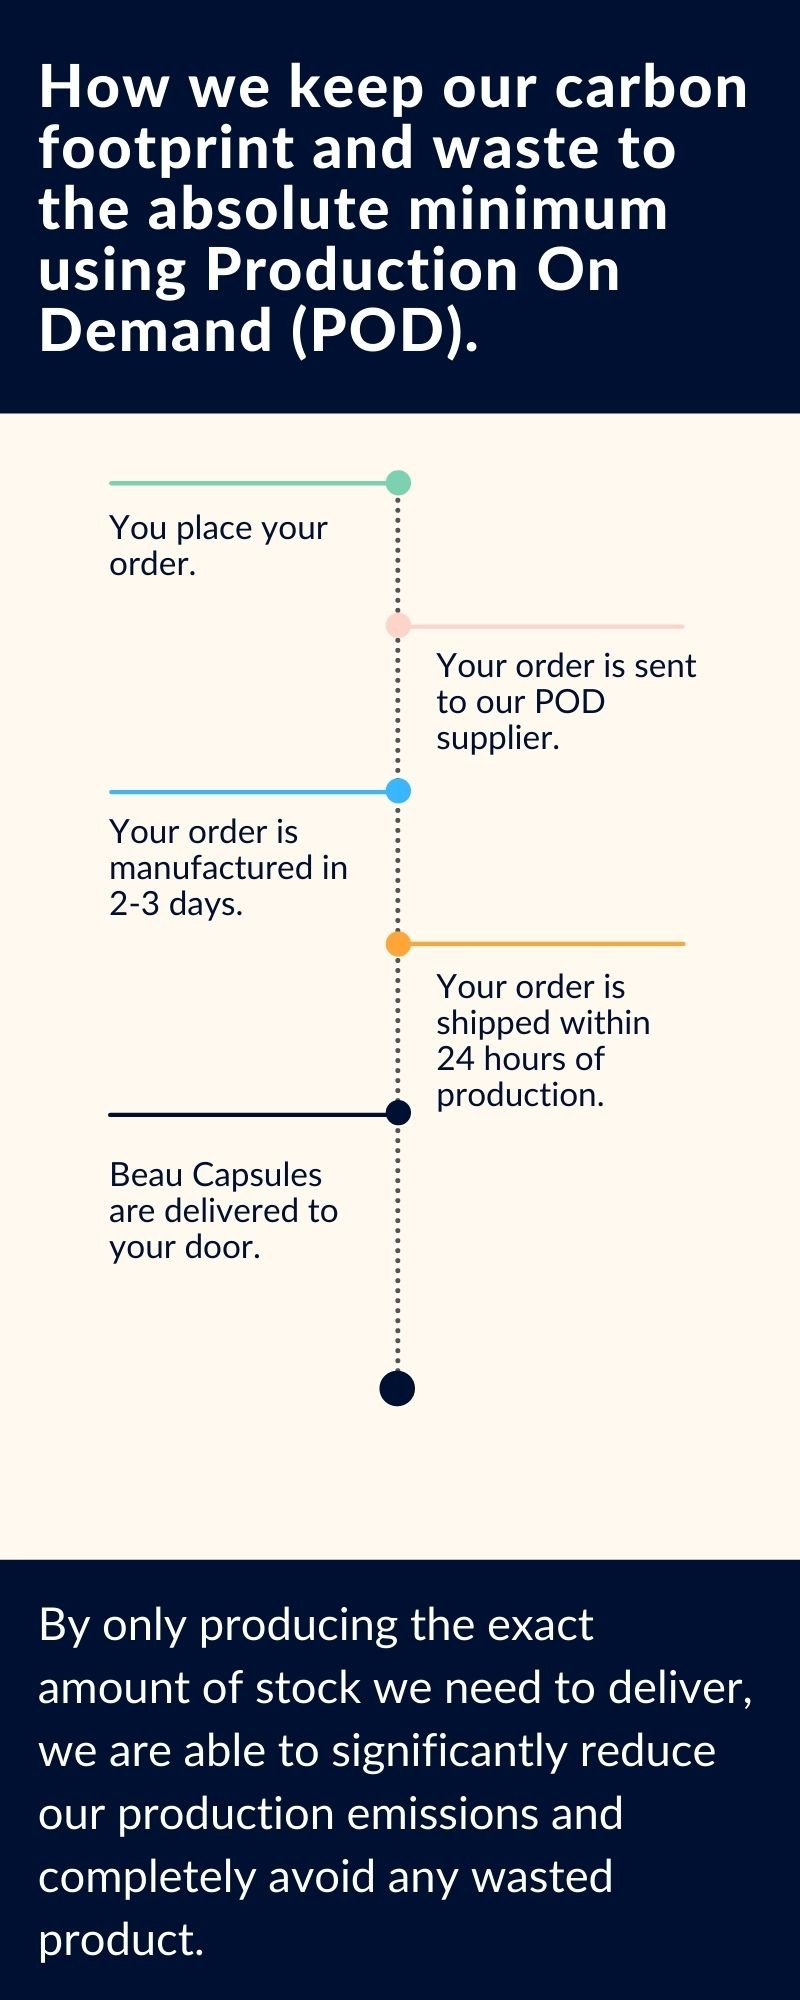 Production on demand infographic